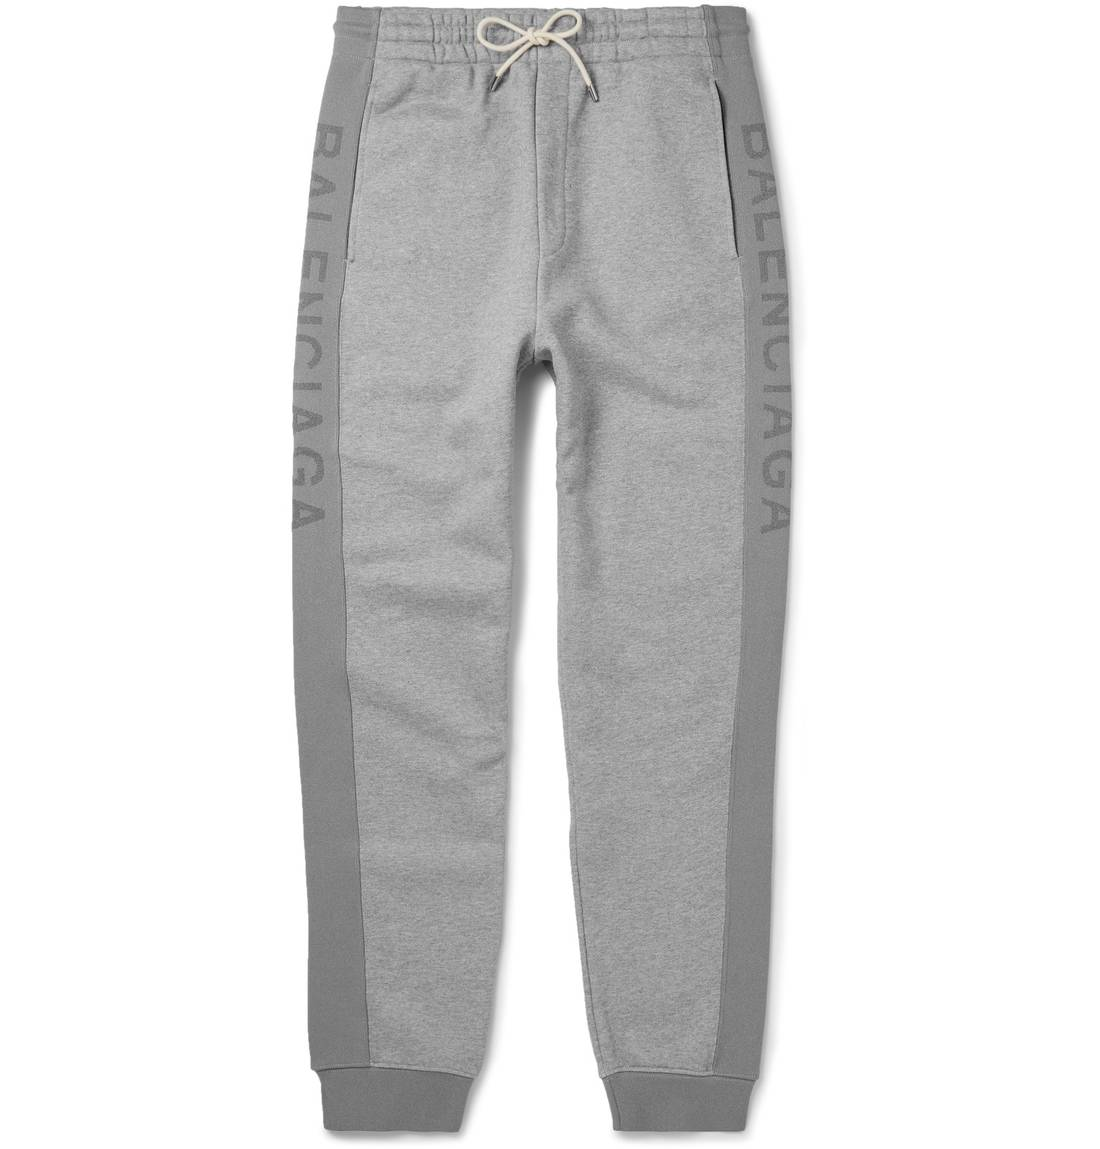 logo sweatpants Balenciaga Release Dates Cheap Online Best Seller For Sale Clearance Genuine tR0W6U7LX